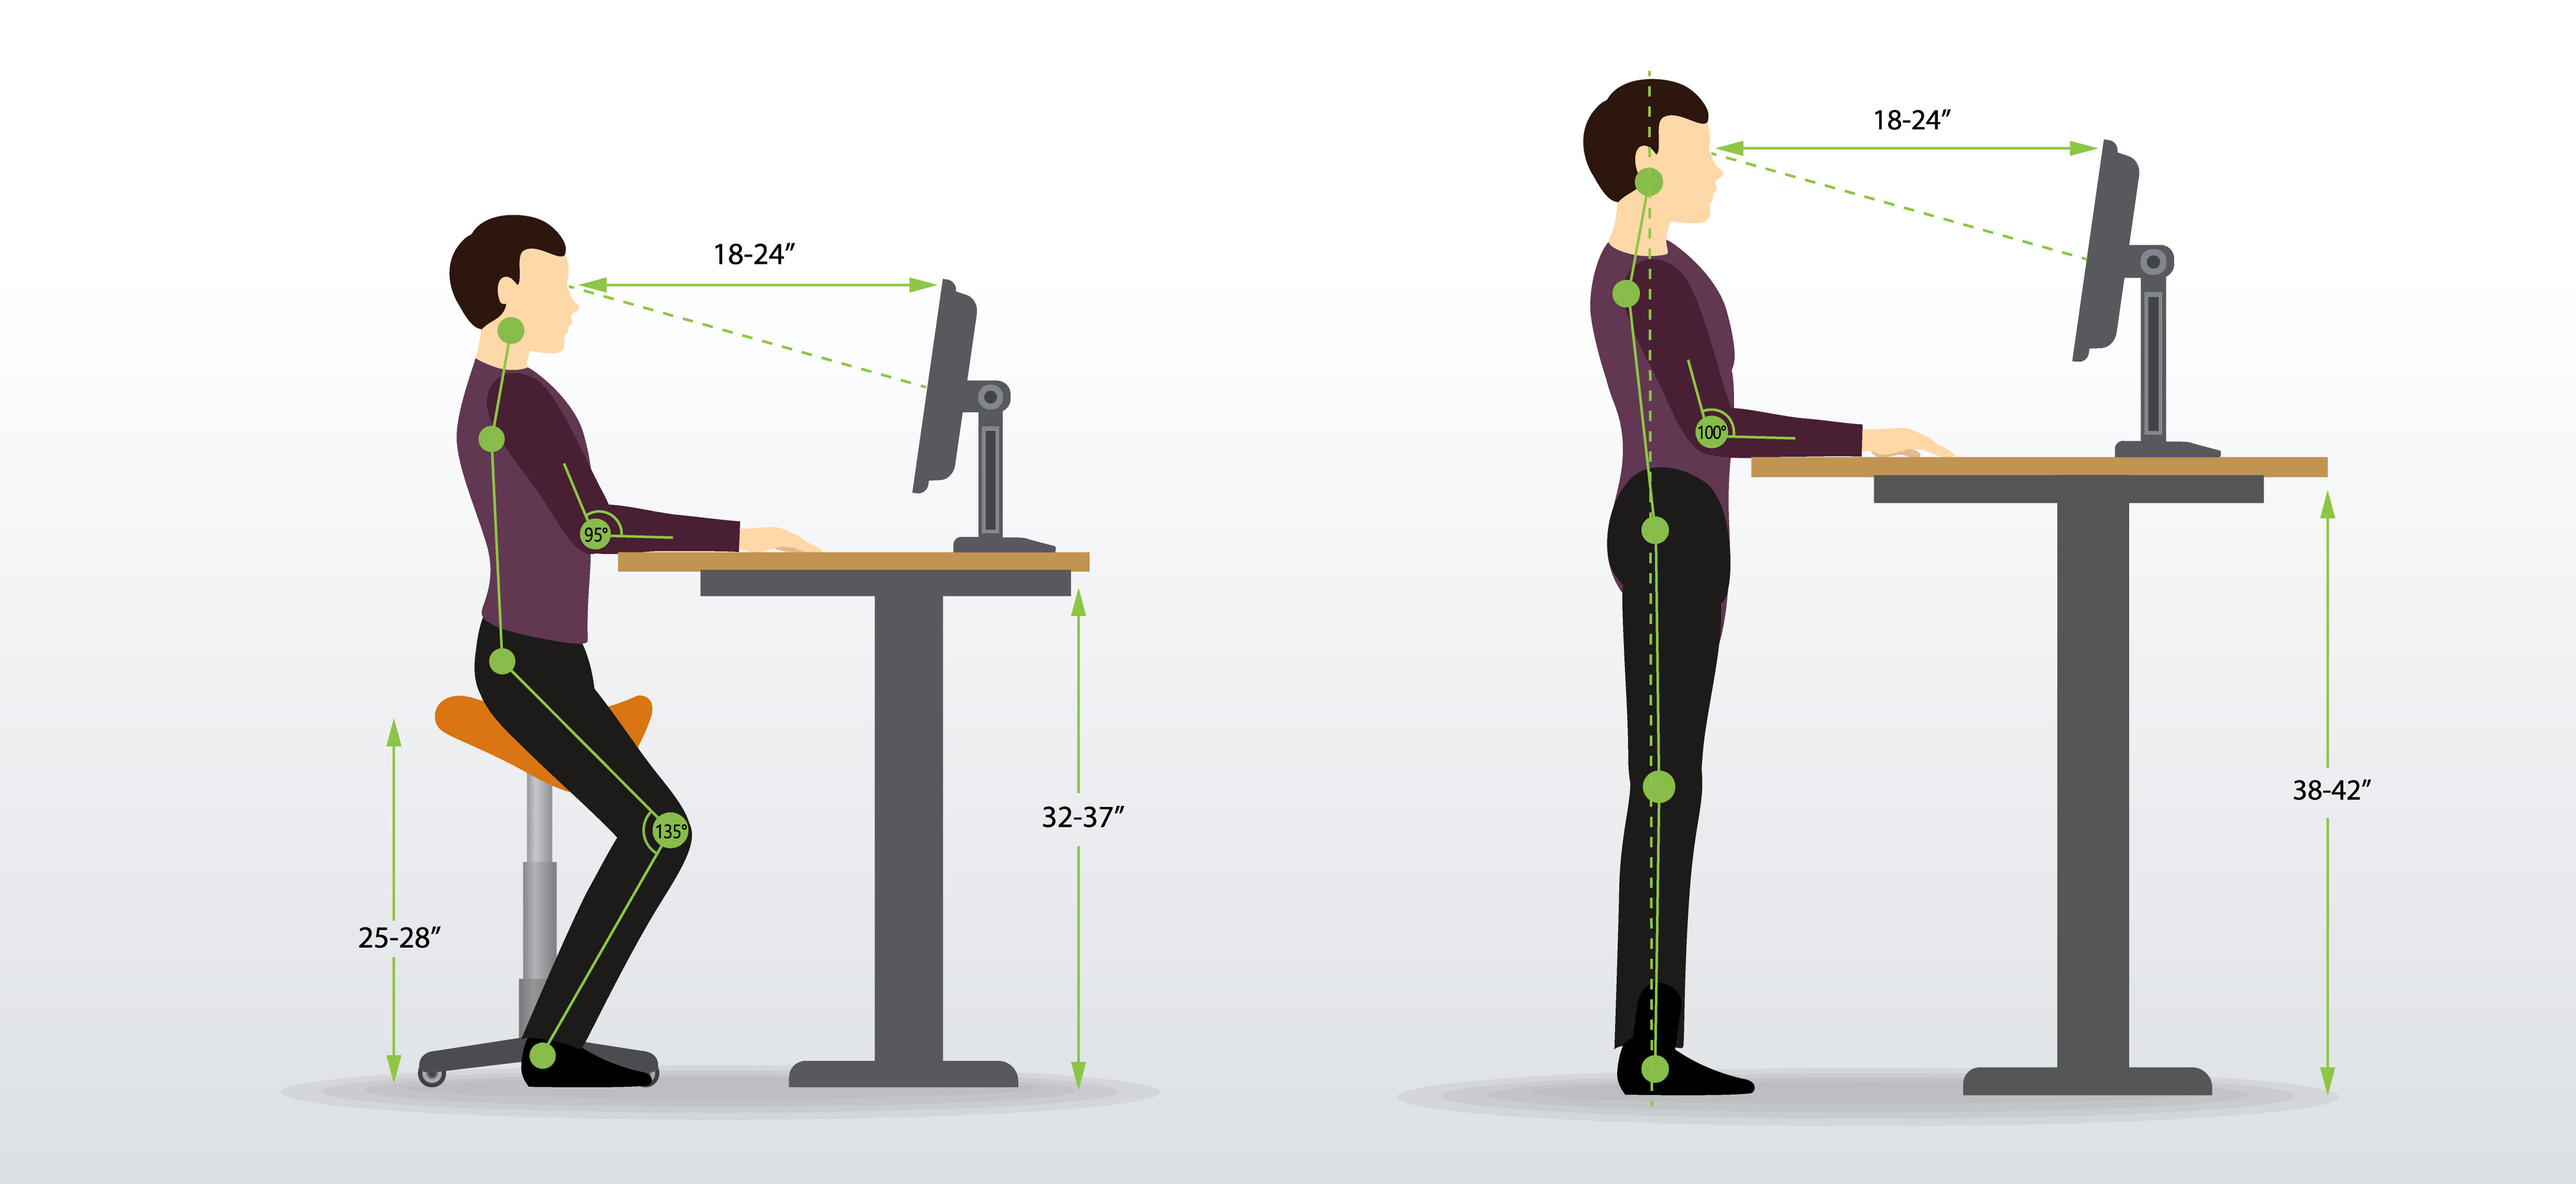 Admirable Requests For Standing Desks How Hr Can Exercise Its Options Download Free Architecture Designs Scobabritishbridgeorg